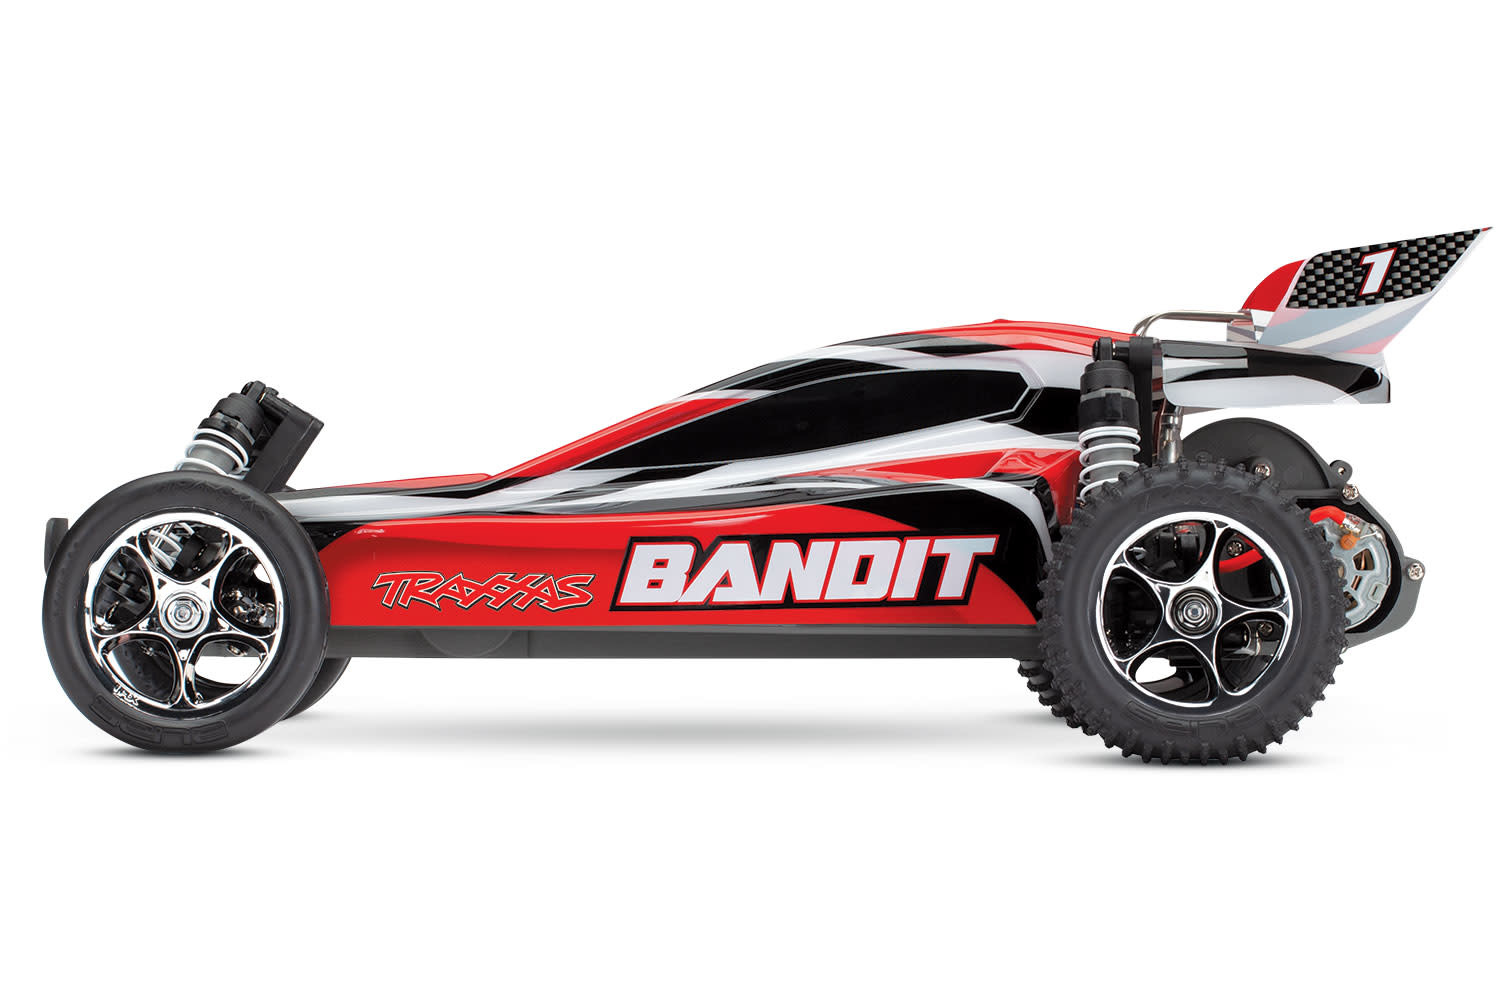 Traxxas Bandit XL-5 TQ (incl. battery/charger), Red, TRX24054-1R-4